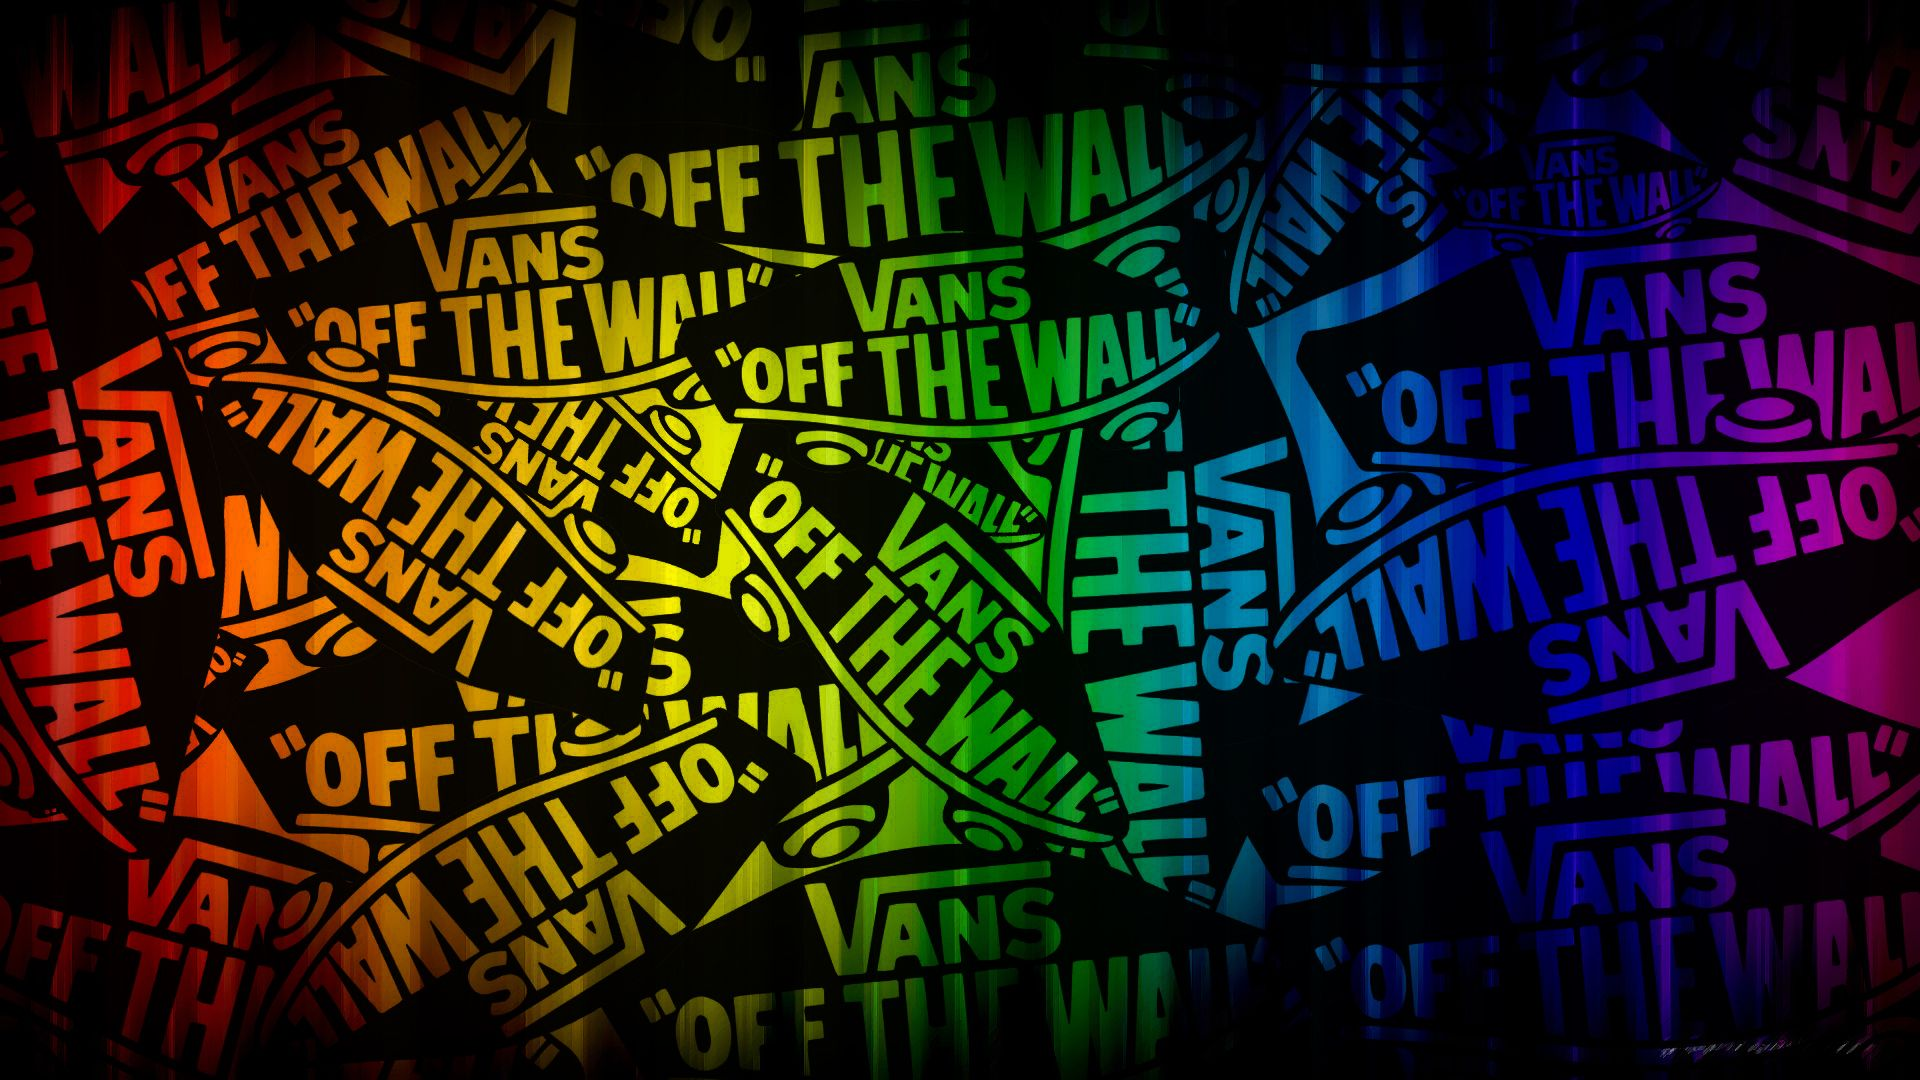 Vans Off the Wall Wallpapers - Top Free